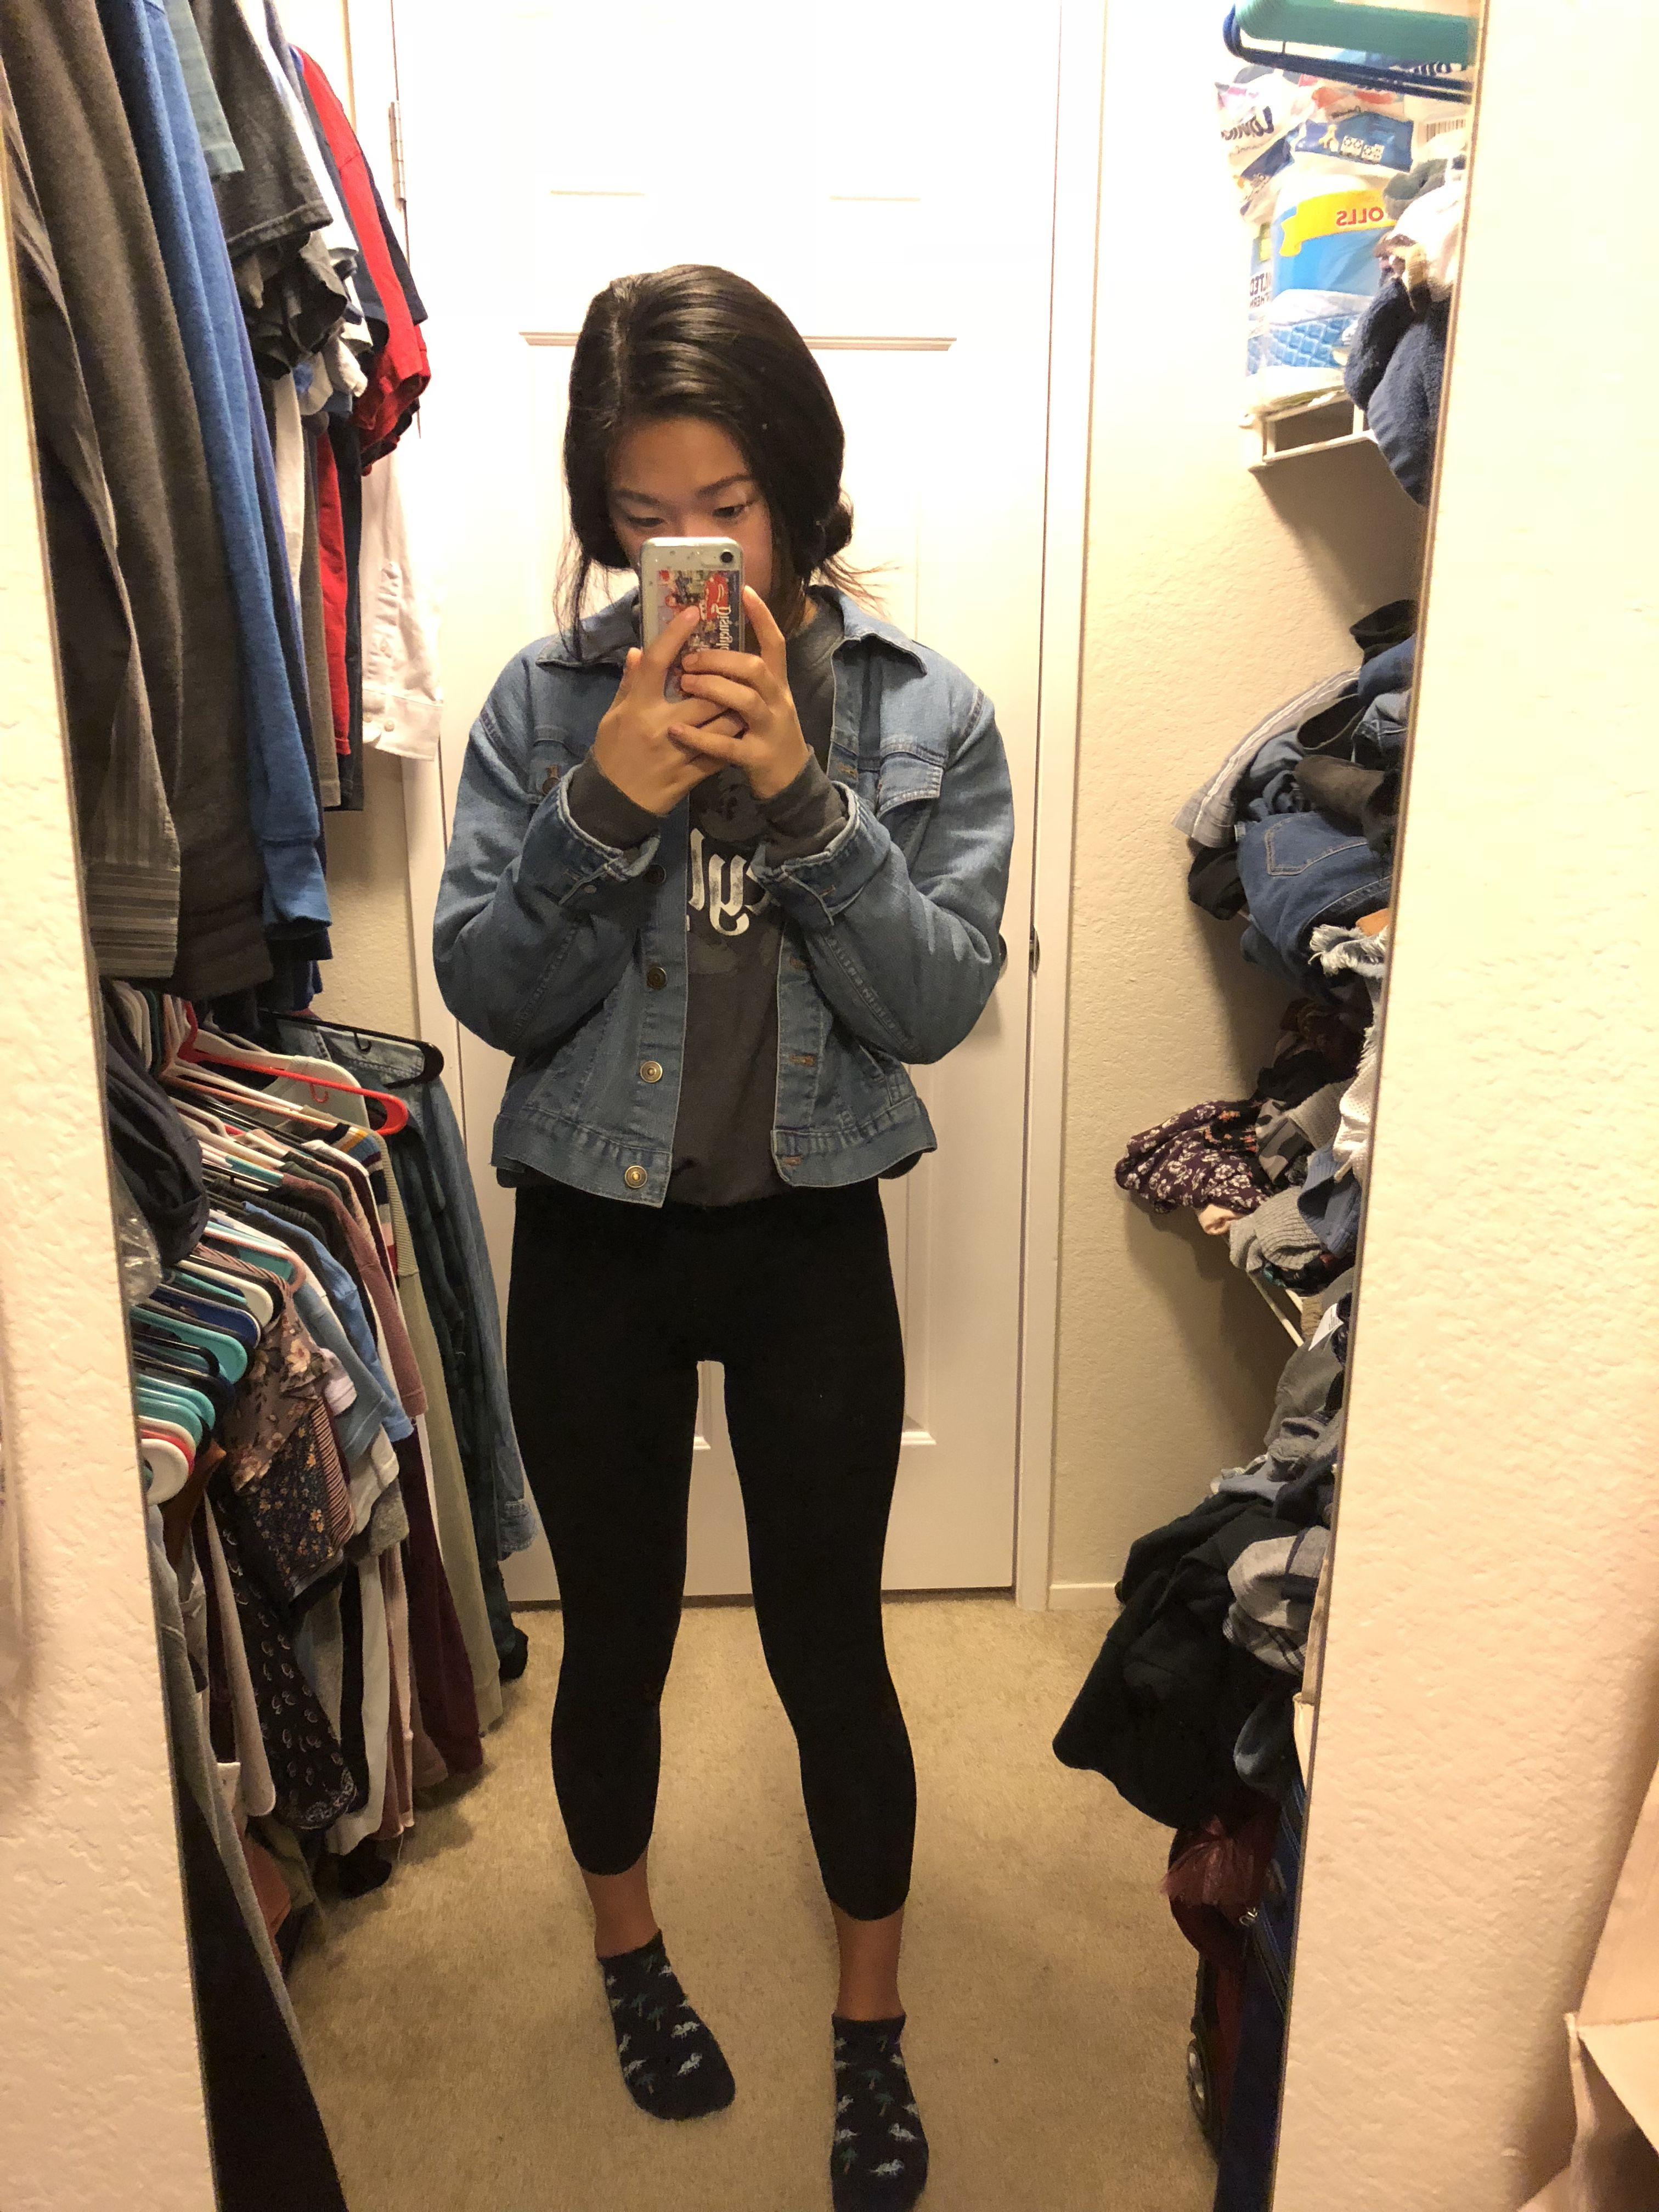 School Outfits With Leggings : school, outfits, leggings, Super, Sweater,, Leggings,, Jacket, Outfits, Outfits,, Leggings, Outfit, Winter